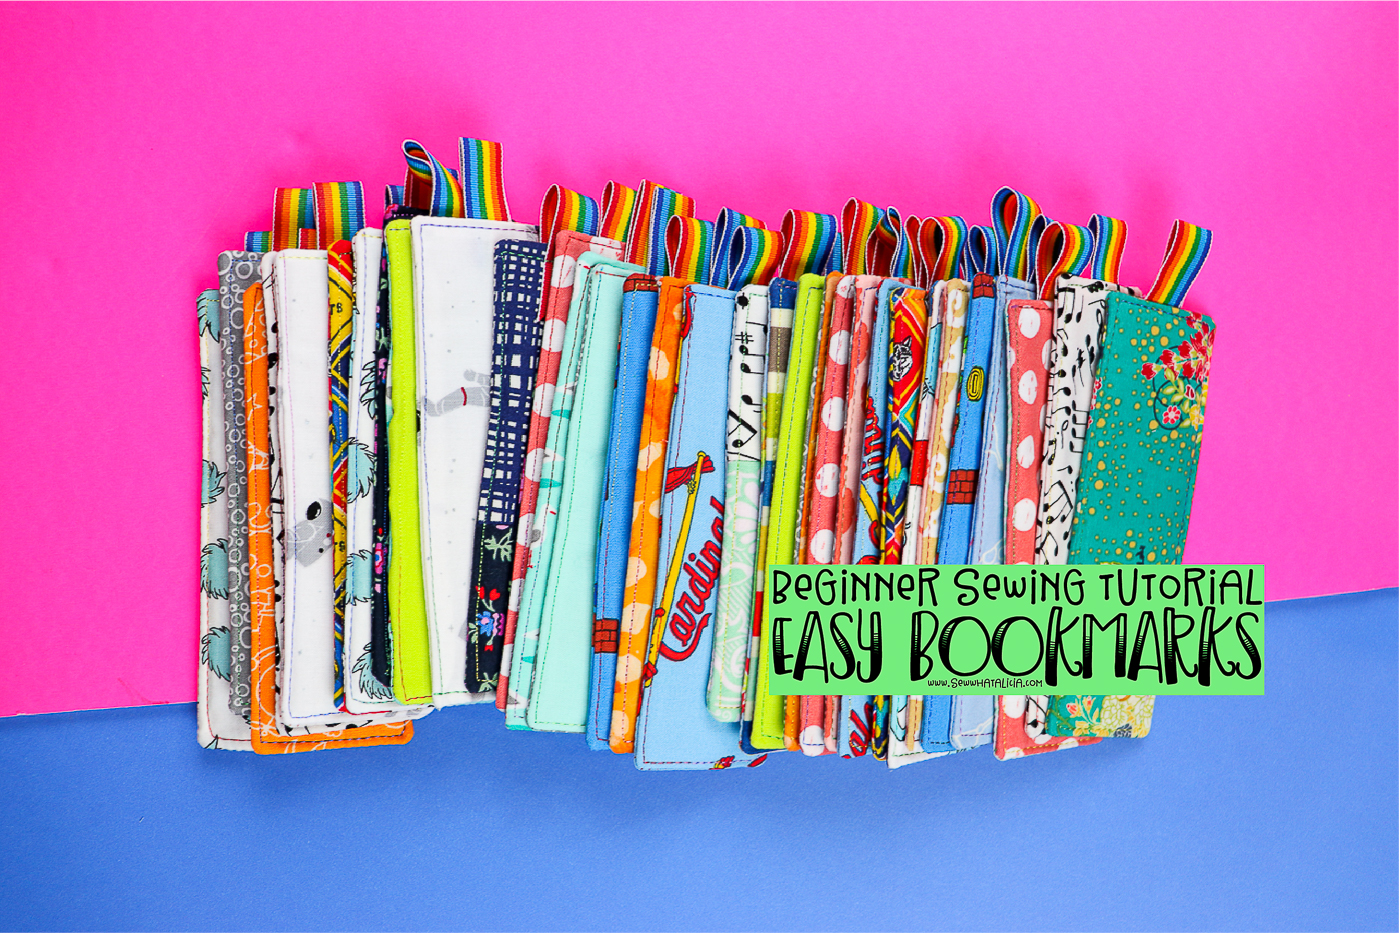 pictured many fabric bookmarks